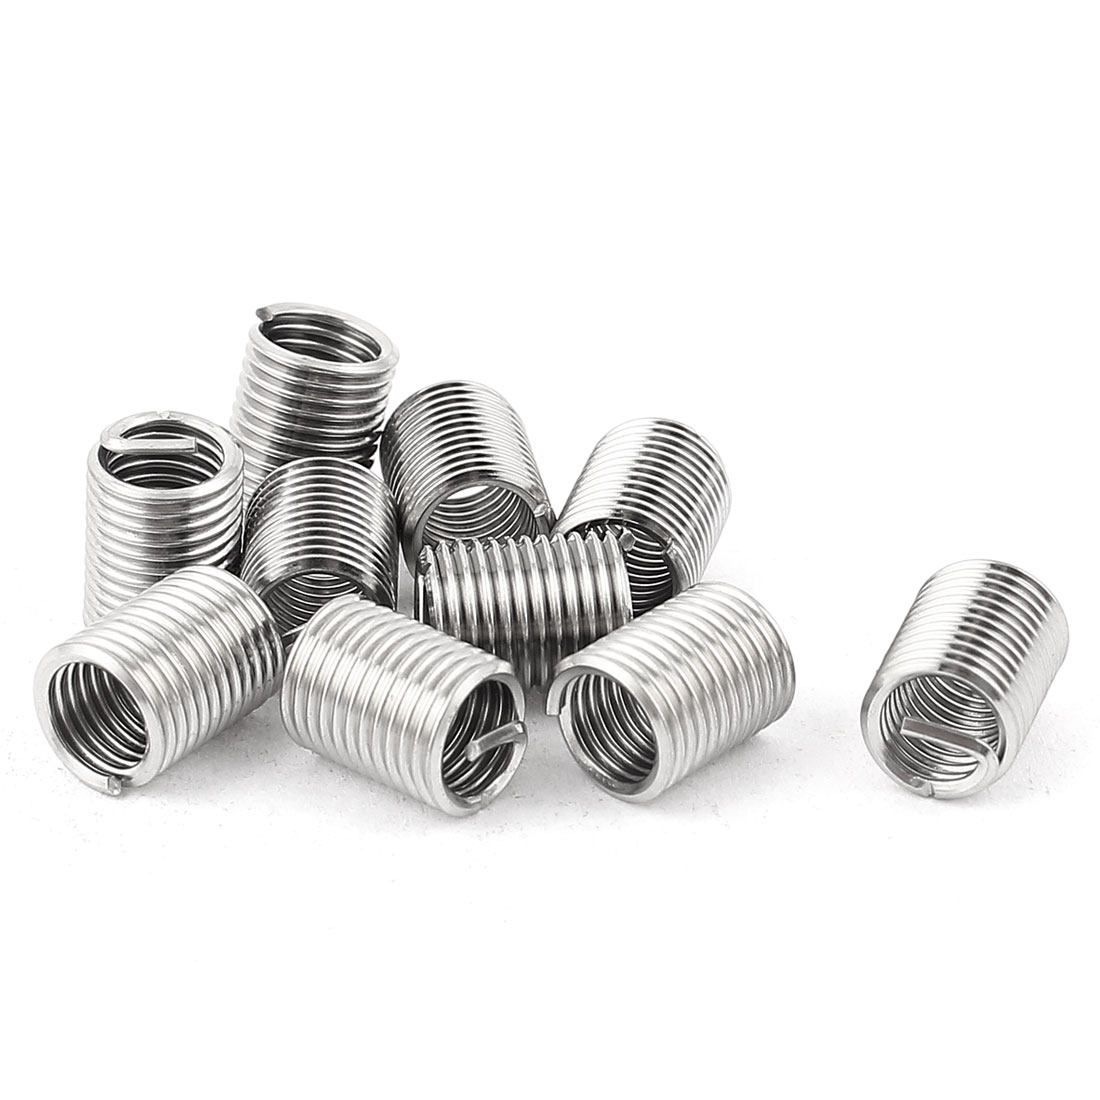 10Pcs 304 Stainless Steel Helicoil Wire Thread Repair Inserts M6 x 1mm x 2.5D